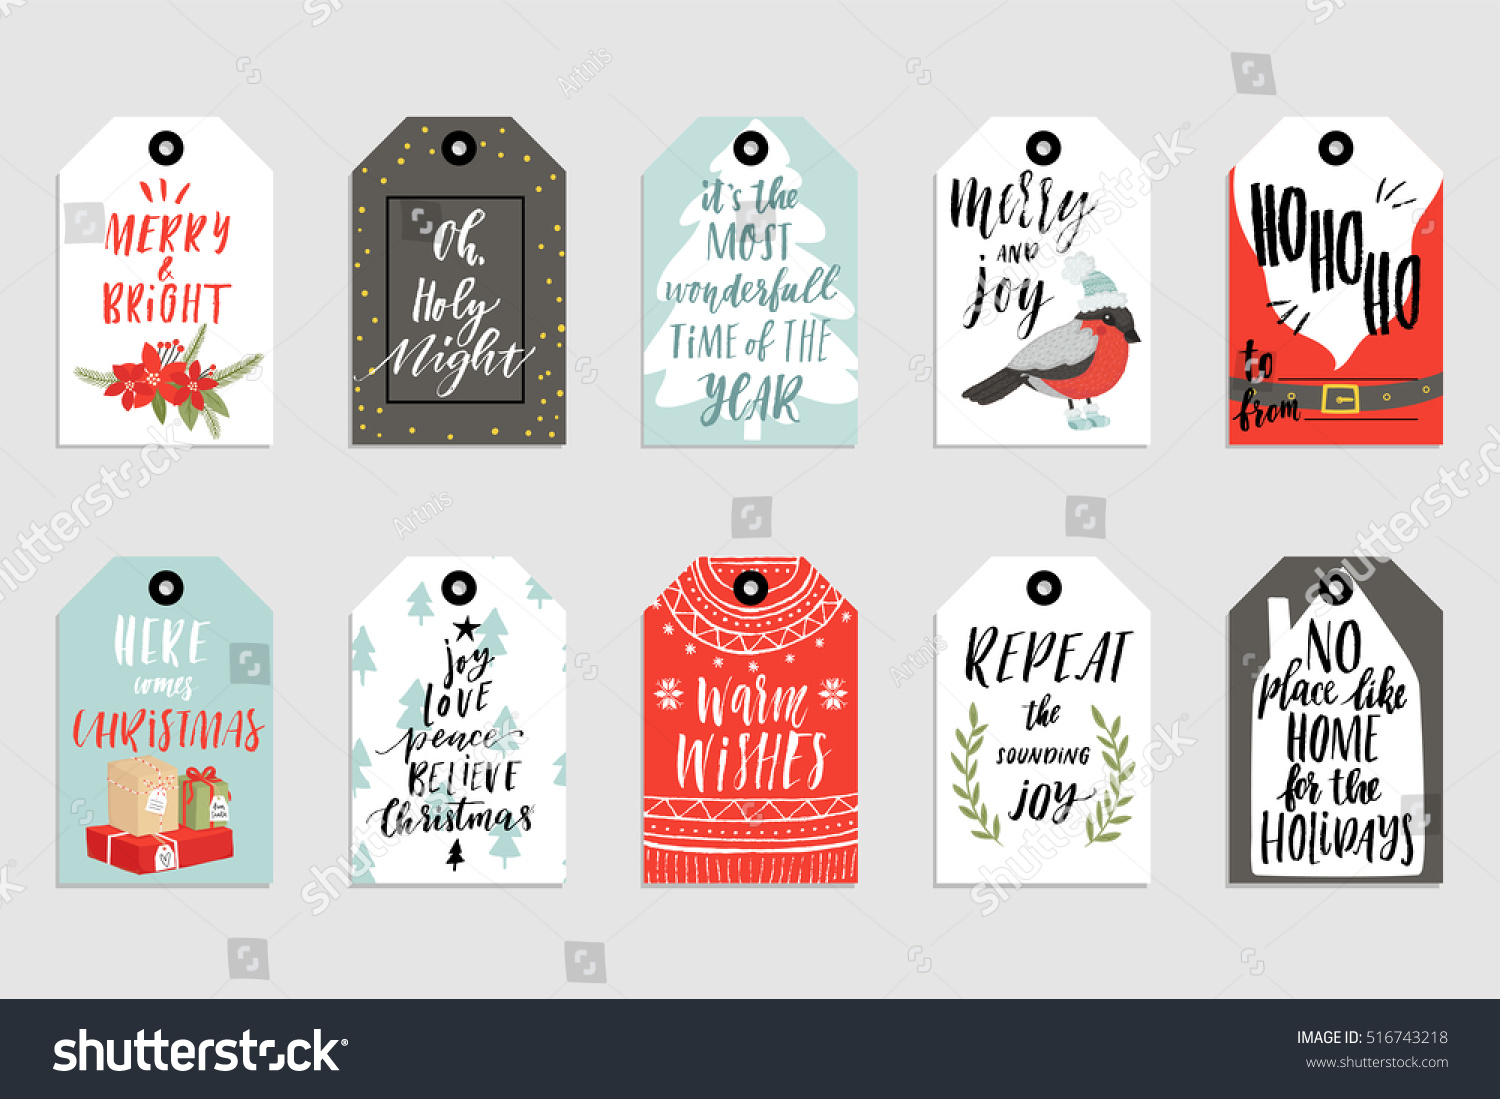 collection of 10 cute merry christmas and happy new year ready to use gift